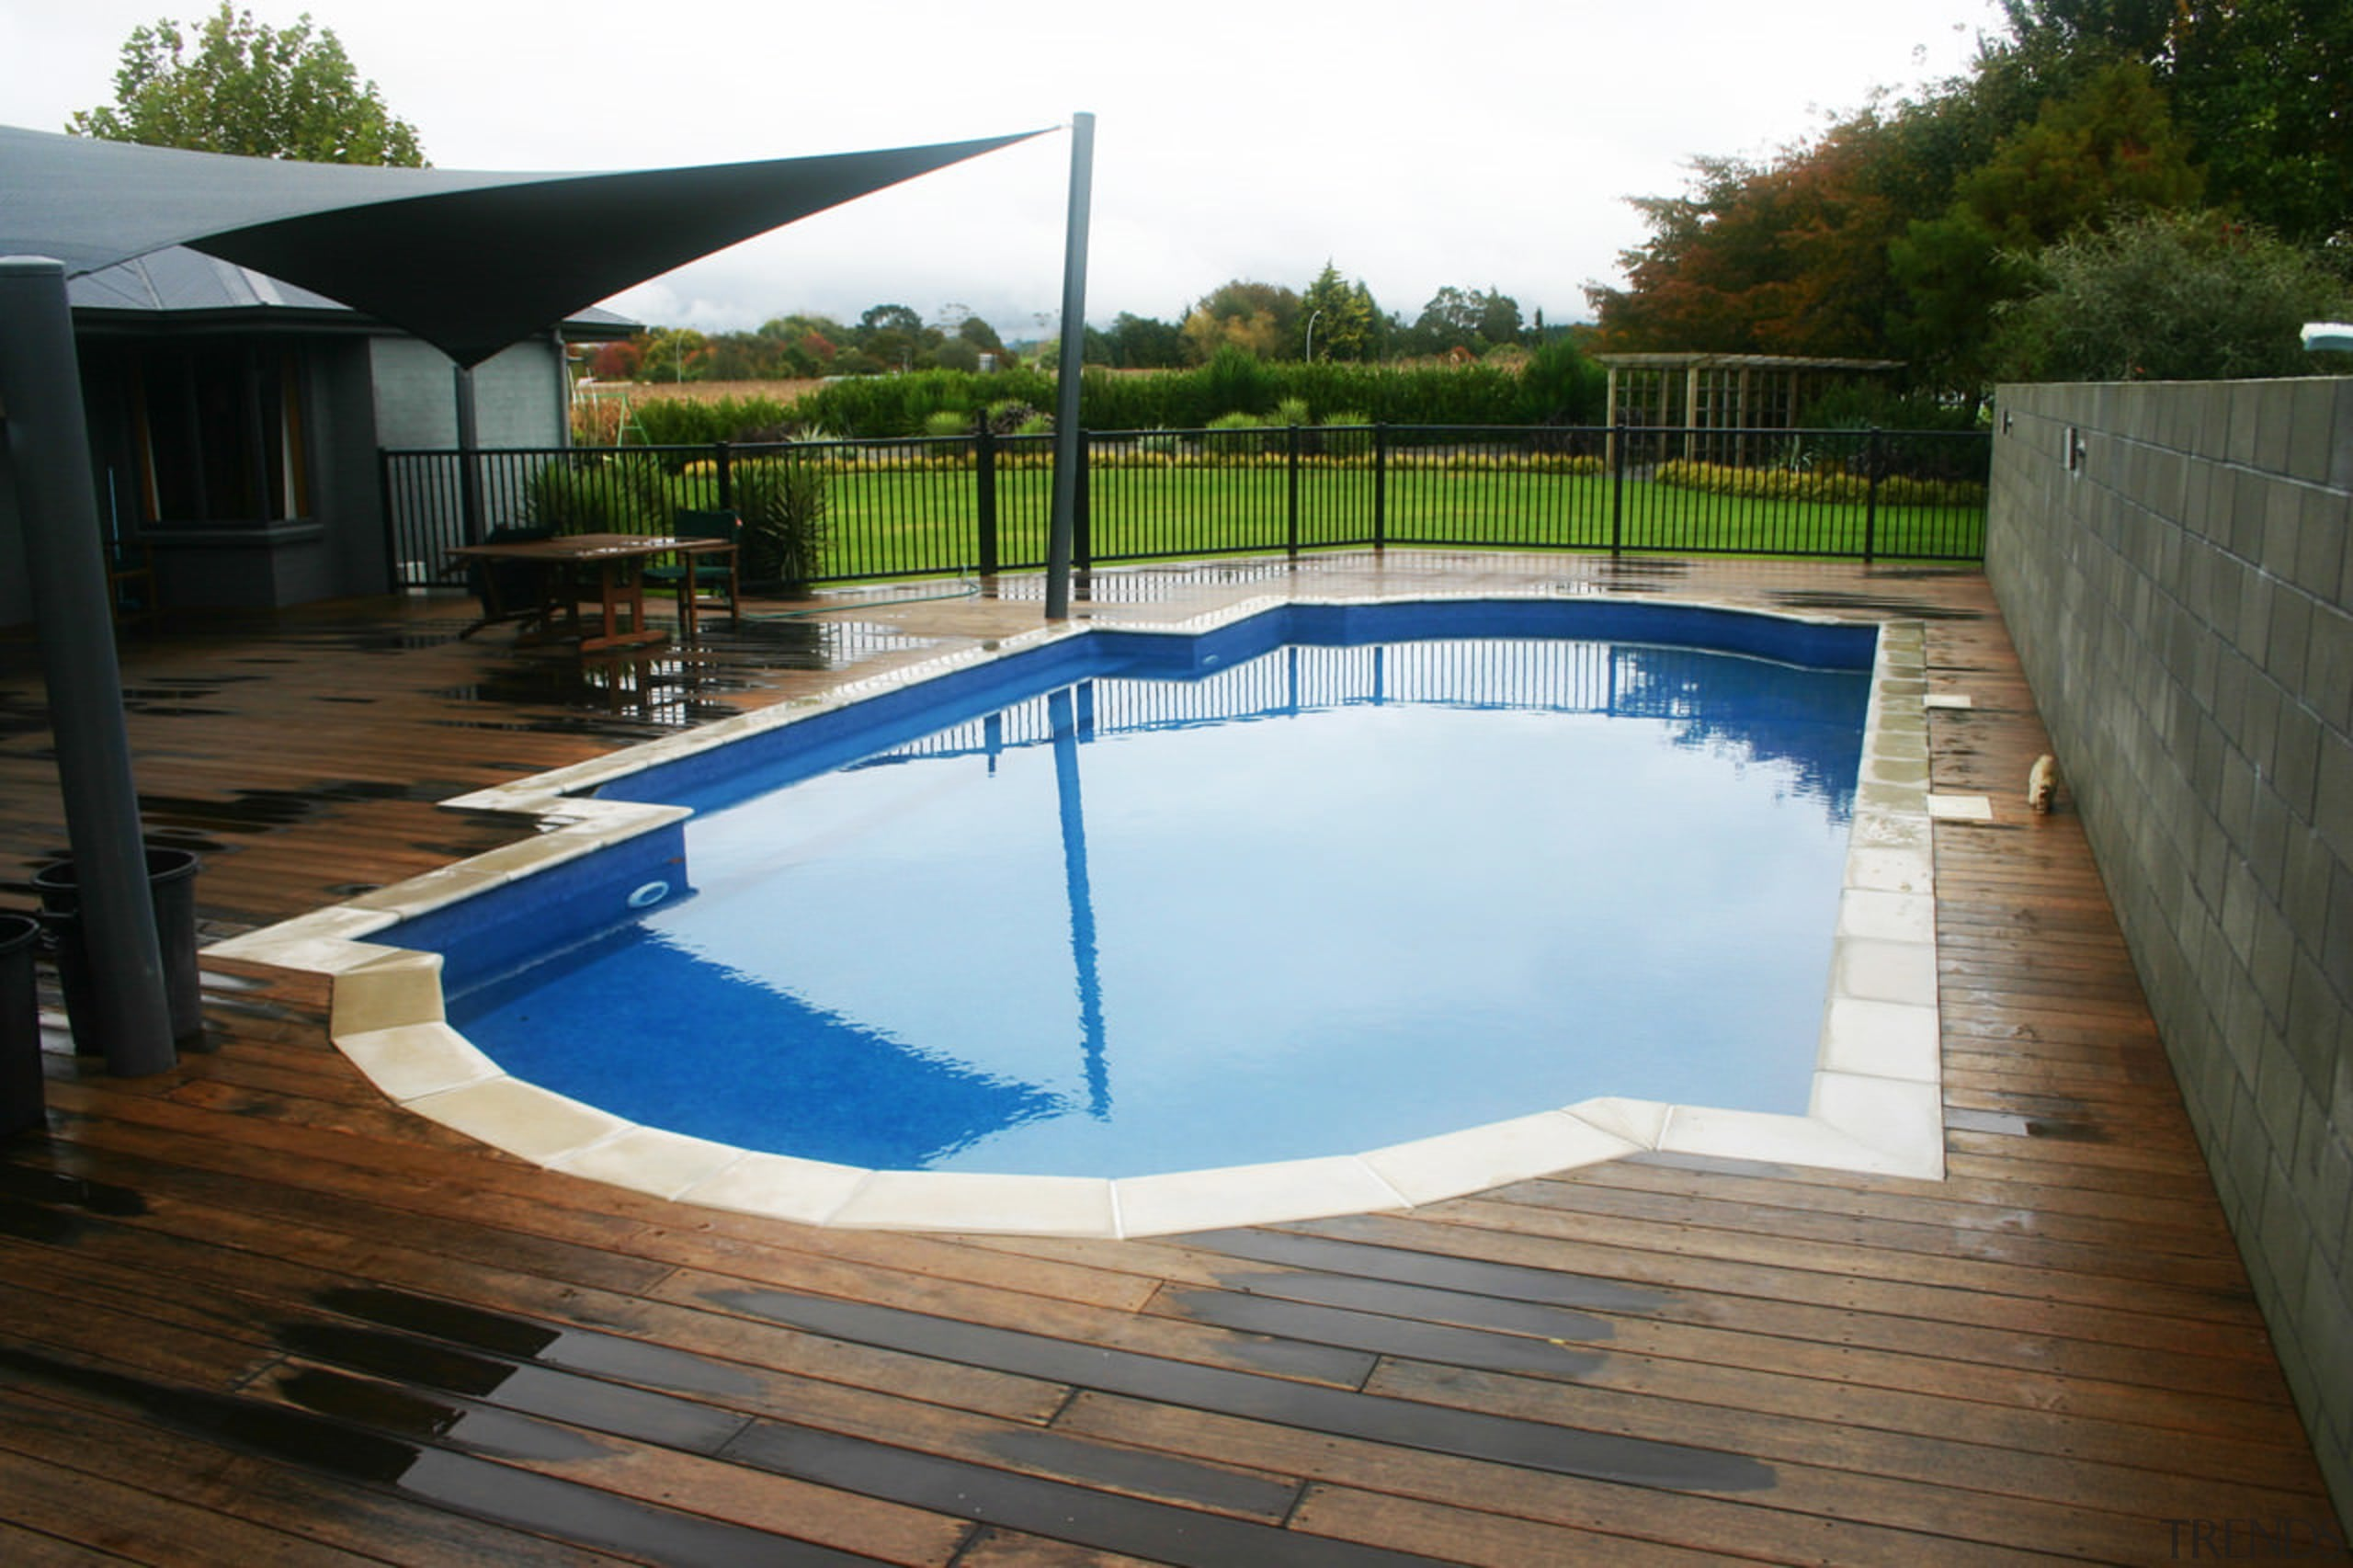 Cascades highly durable Aqualux 770 interiors last over backyard, deck, floor, leisure, outdoor structure, property, real estate, swimming pool, water, wood, yard, brown, white